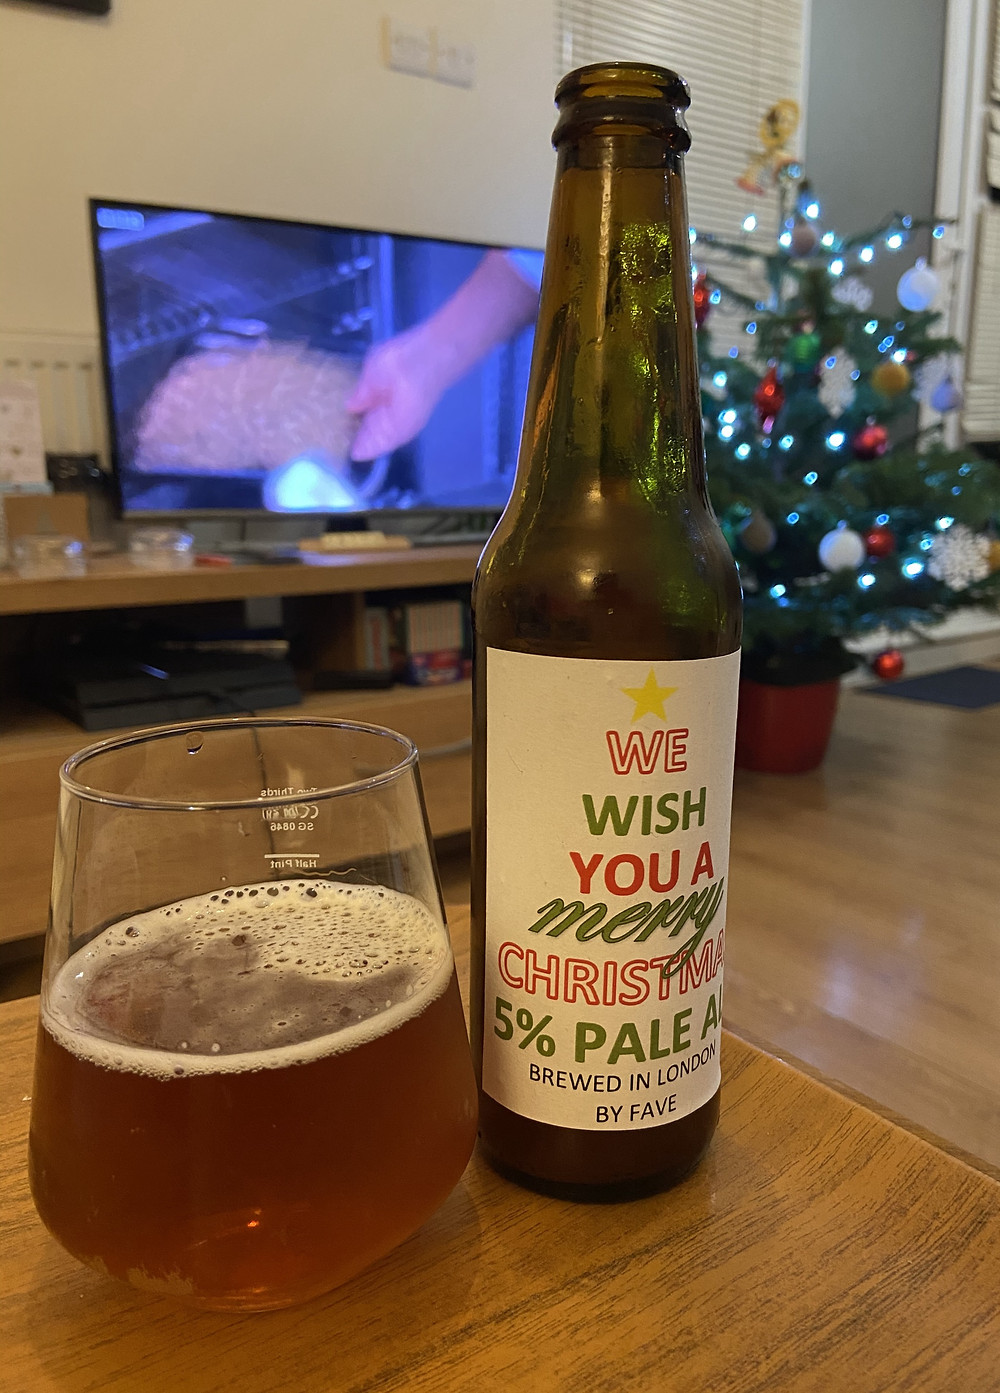 Christmas American pale ale served in a glass